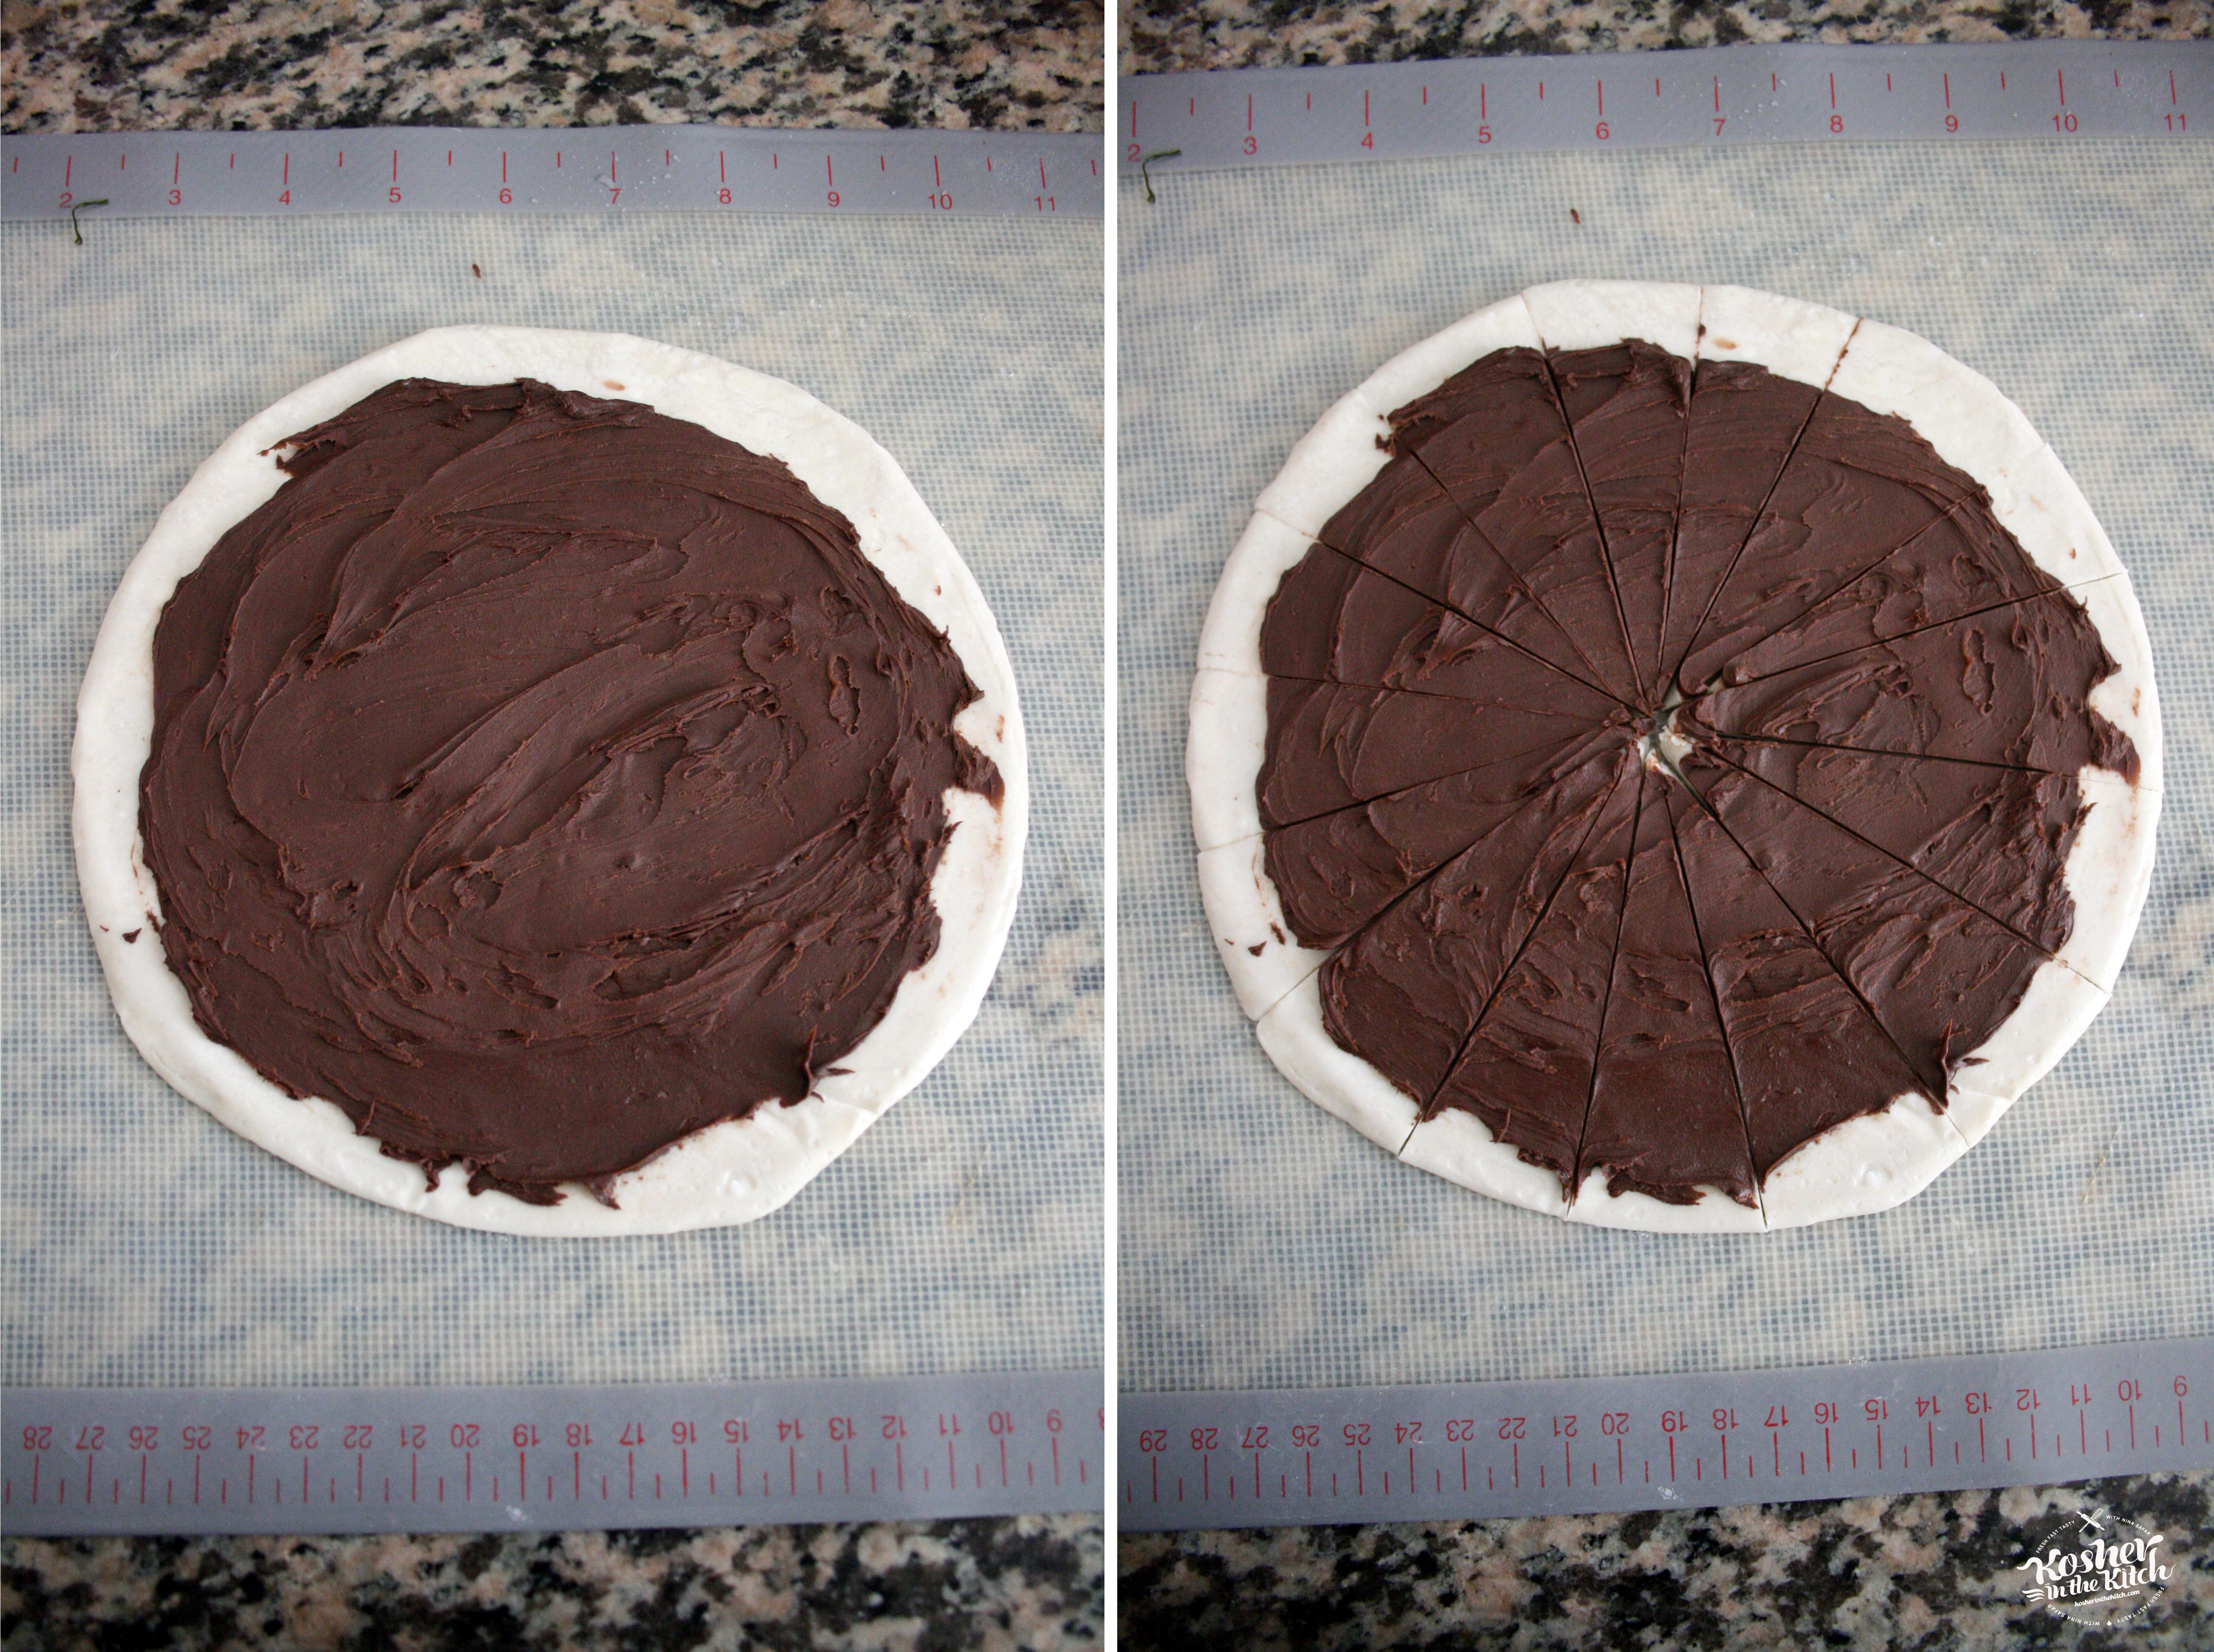 Smear chocolate spread over malawach, then cut lines acrosss dough forming triangles